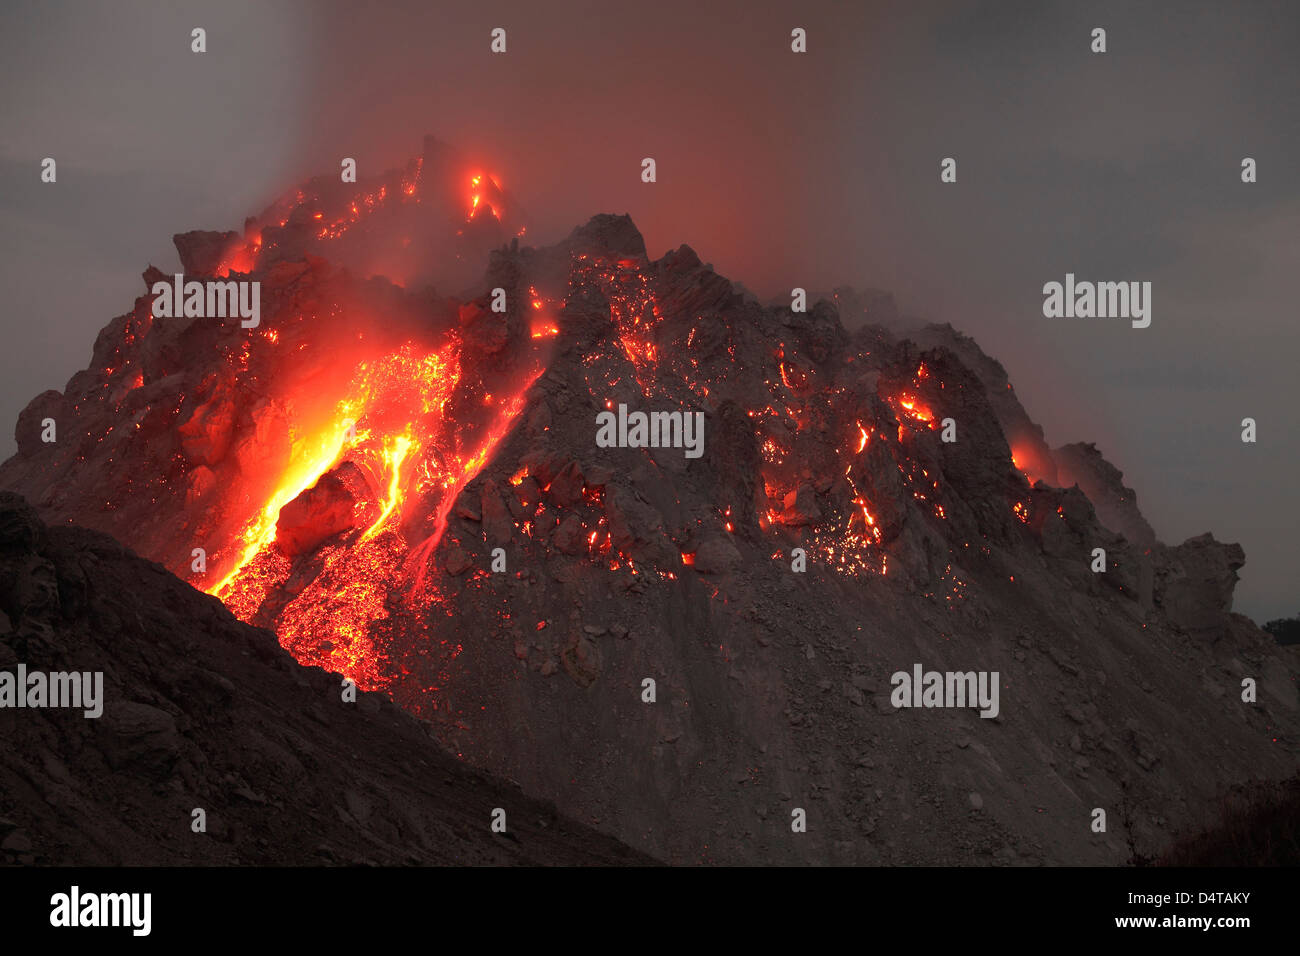 November 30, 2012 - Glowing Rerombola lava dome of Paluweh volcano during eruption in 2012, Flores, Indonesia. - Stock Image